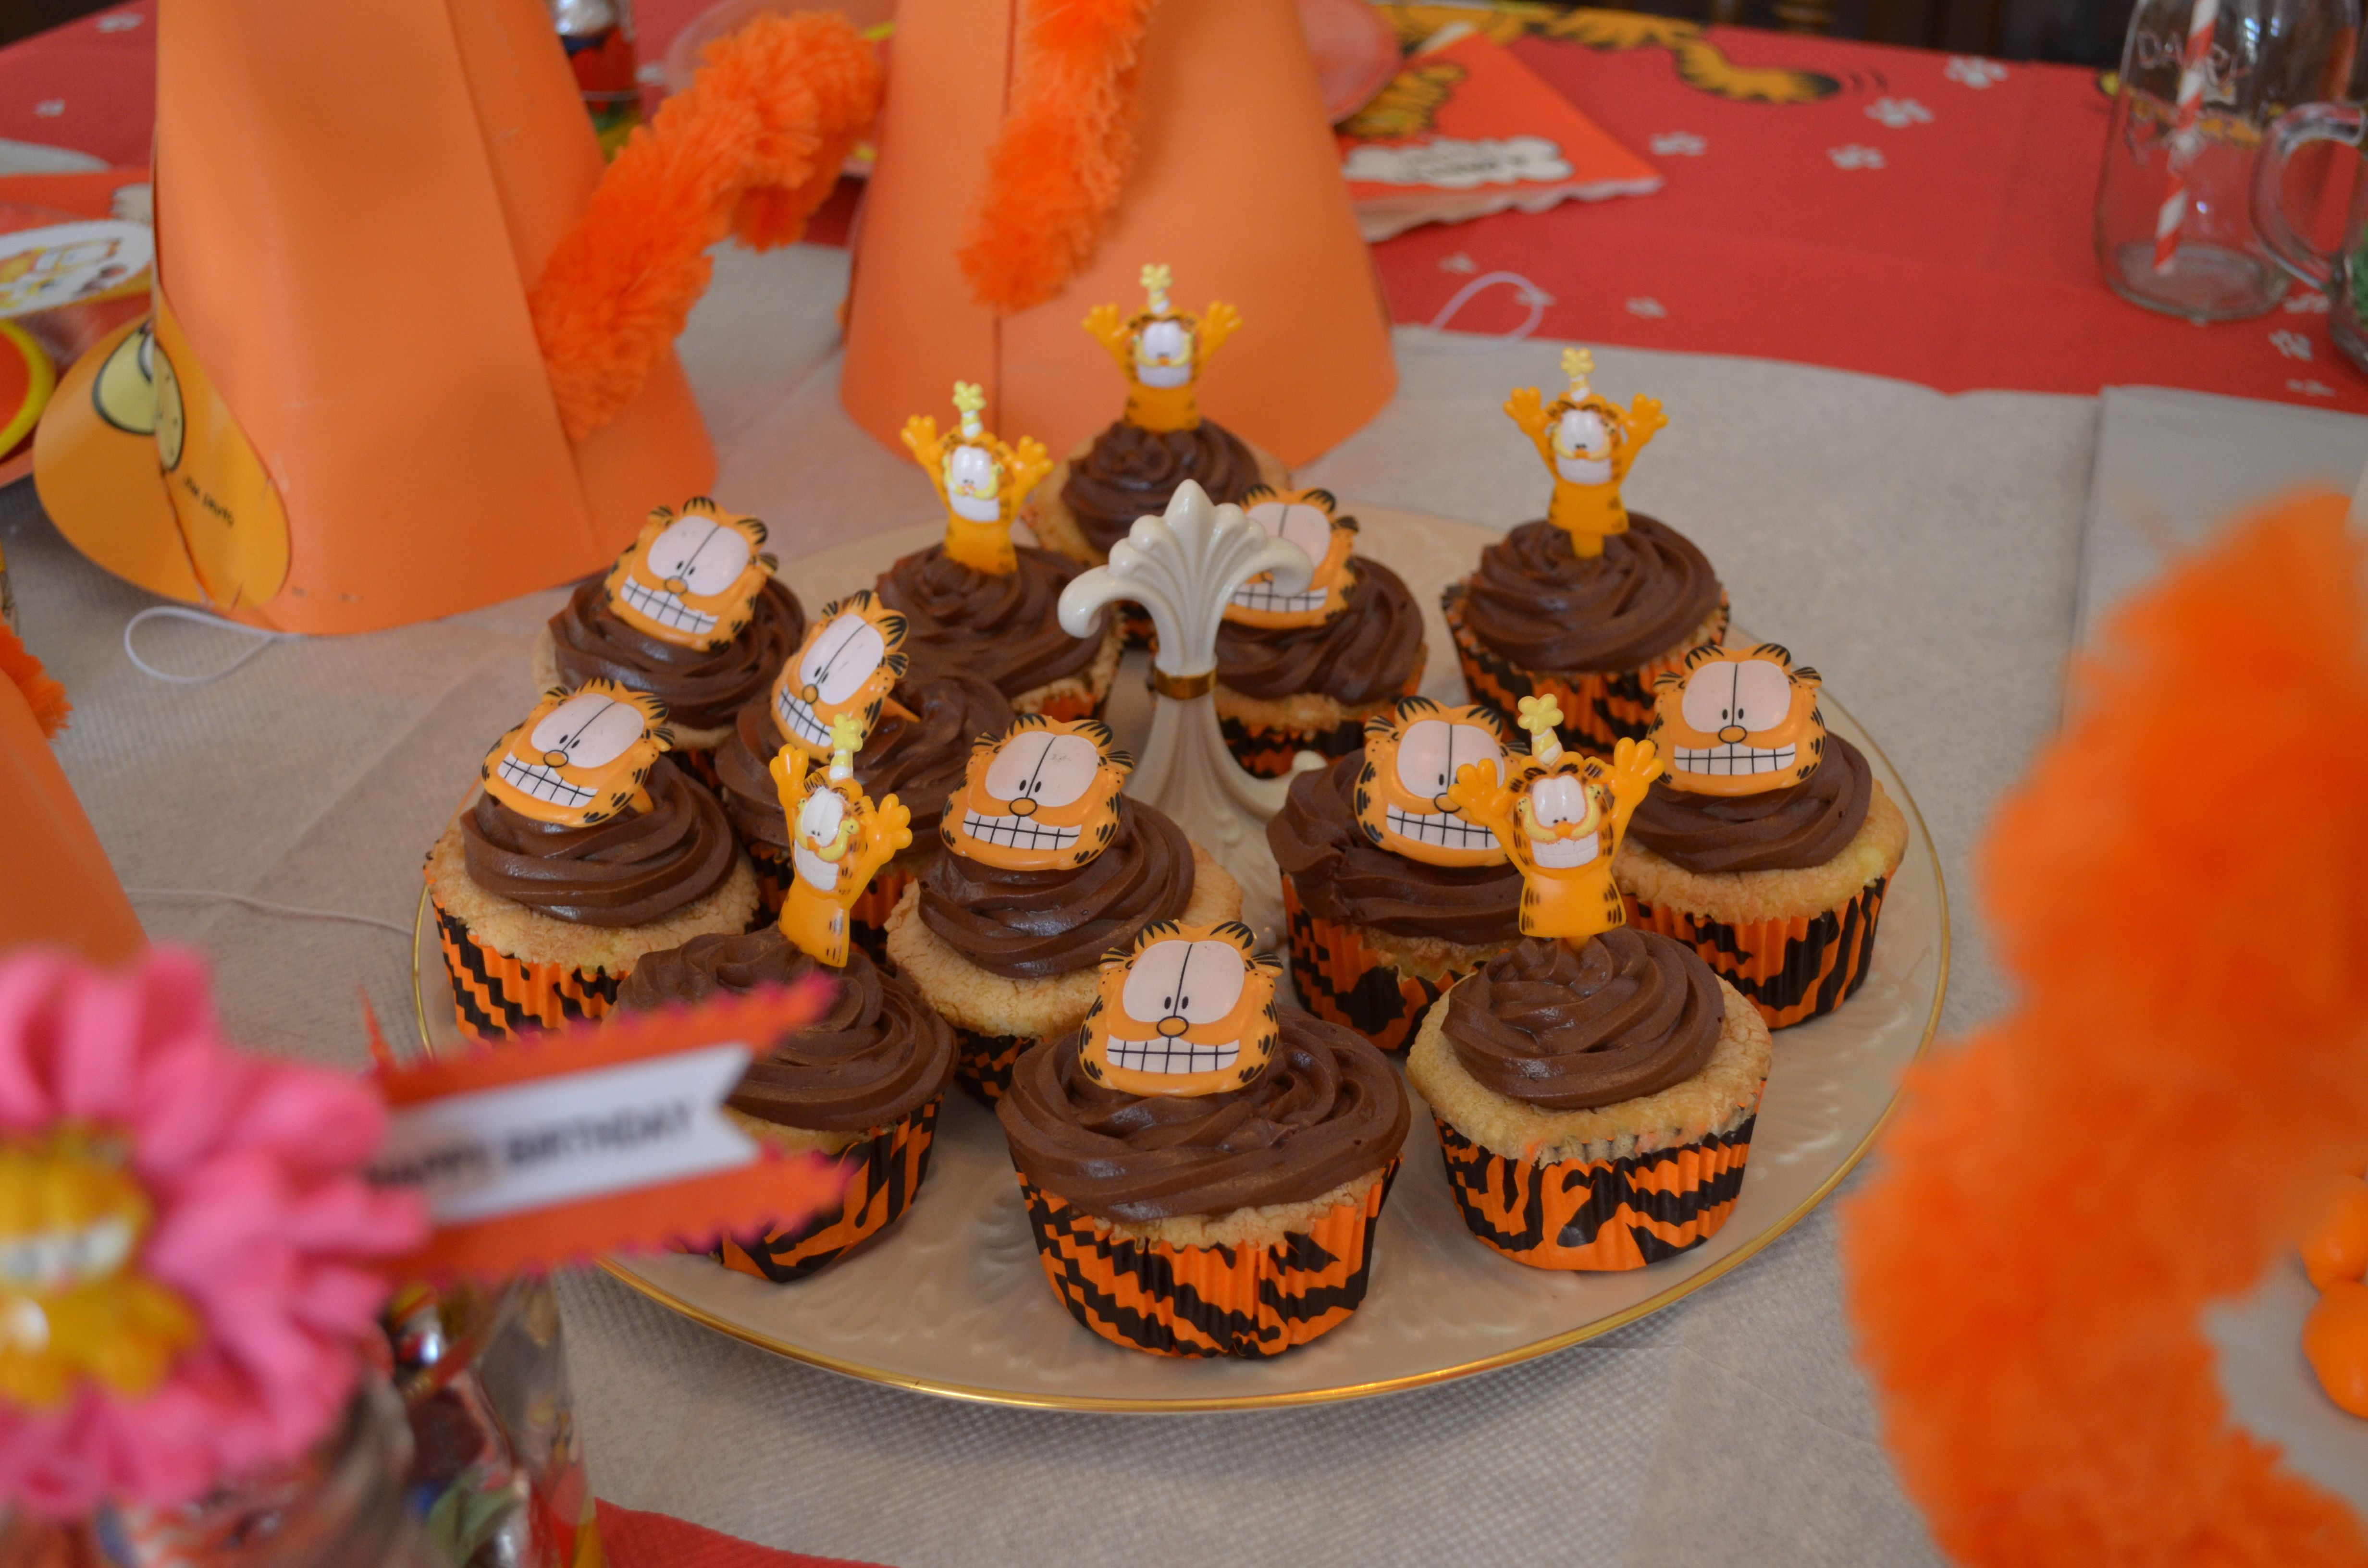 Homemade Garfield cupcakes decorated with chocolate